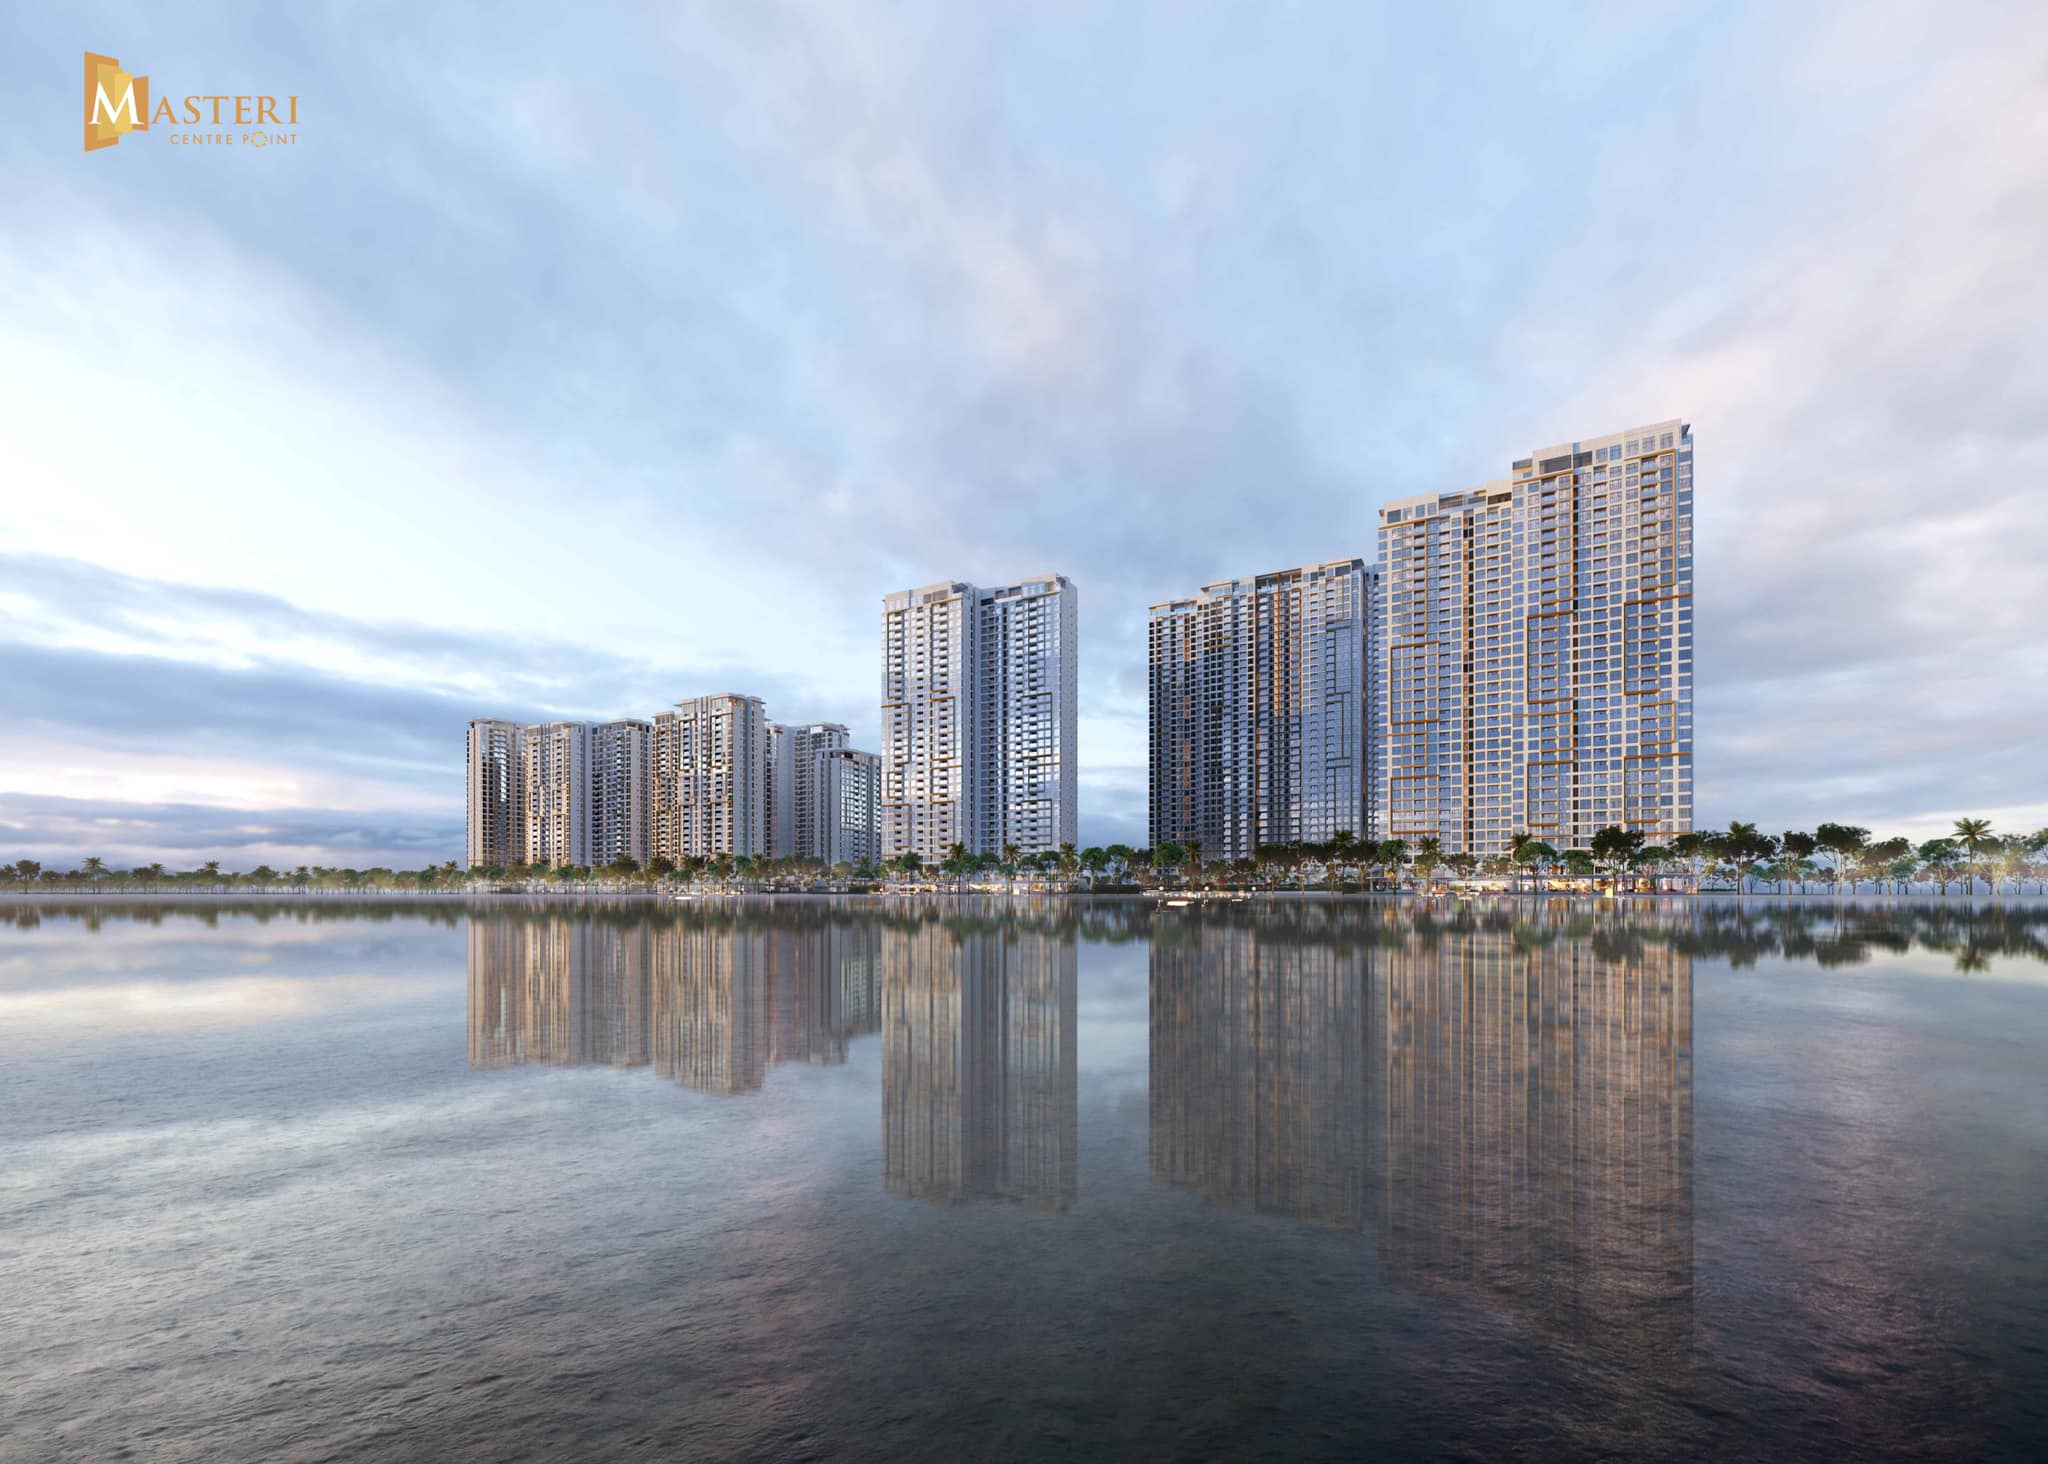 ThucviLand will dispatch Masteri Centre Point apartment - a top of the line real estate project in Ho Chi Minh City, Vietnam